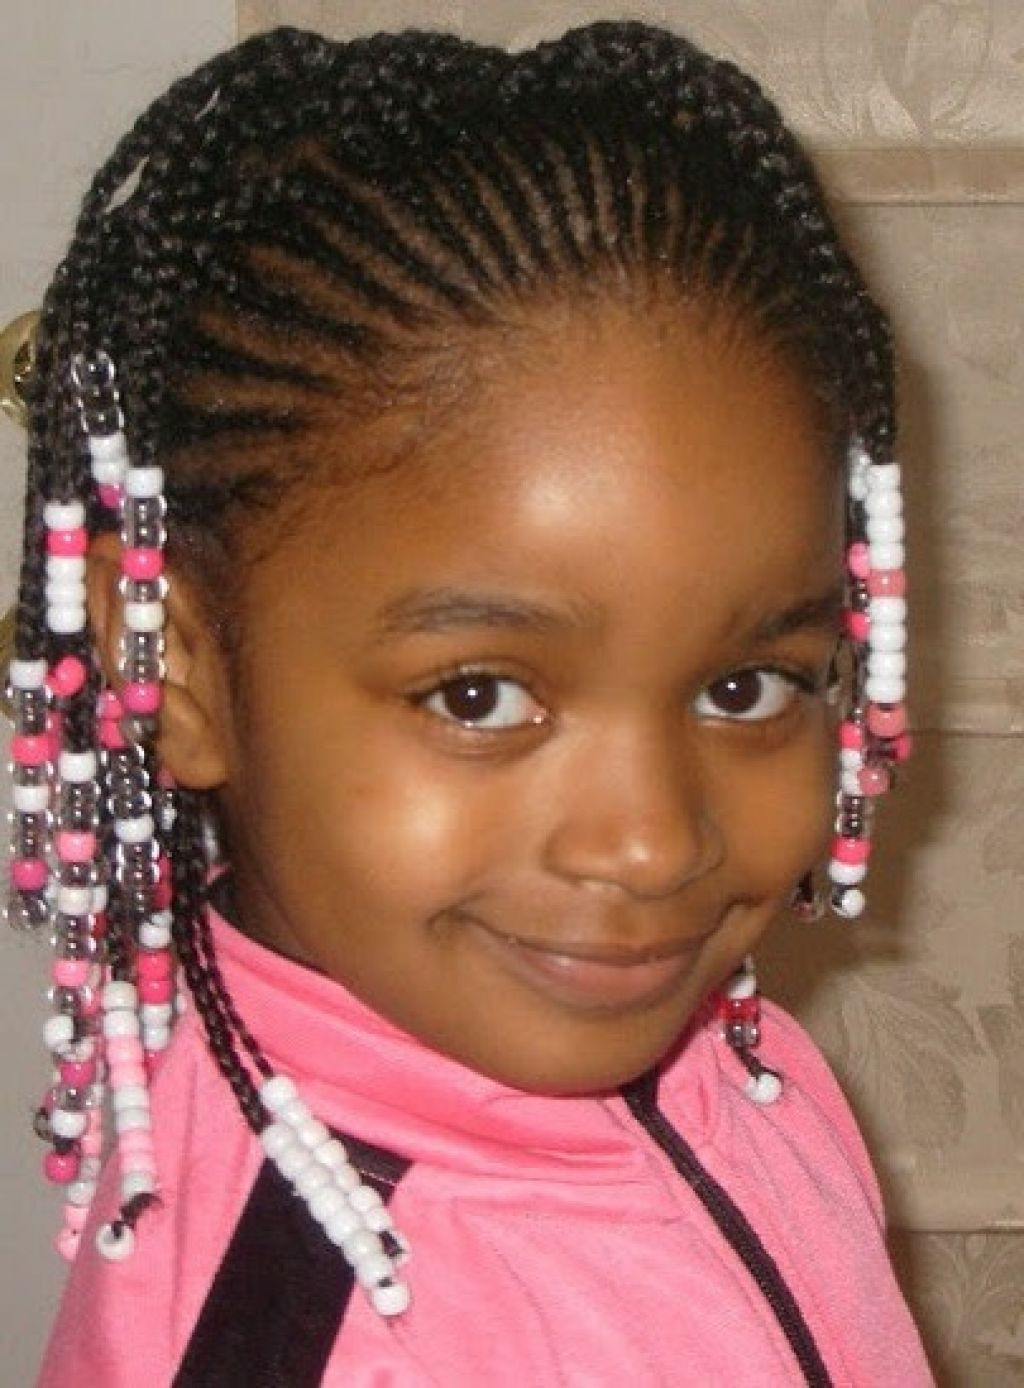 Best ideas about Cute Black Girl Haircuts . Save or Pin Cute Hairstyles Black Hair Hairstyles Inspiration Now.